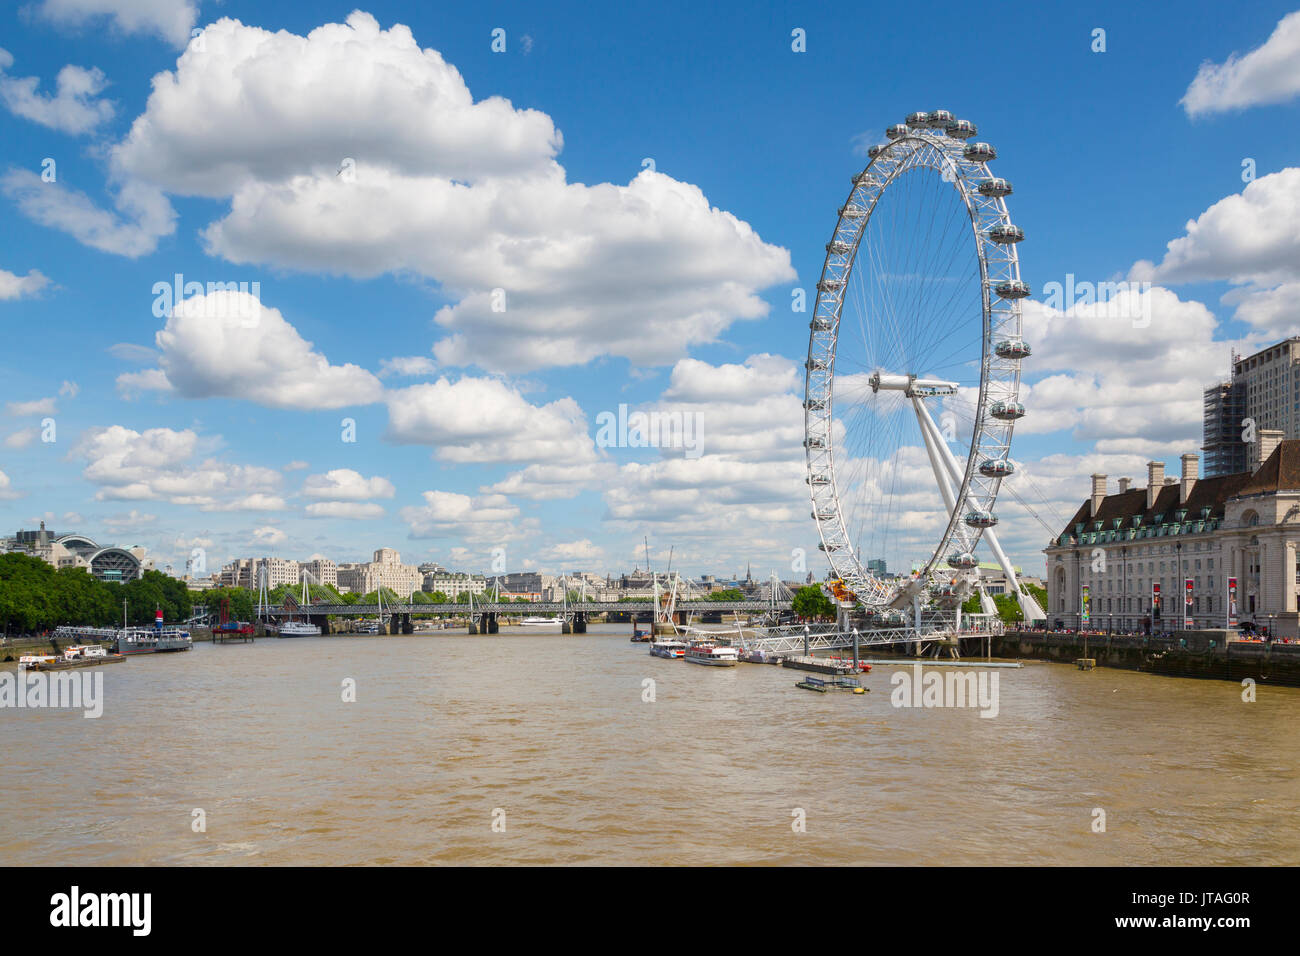 River island and city of westminster